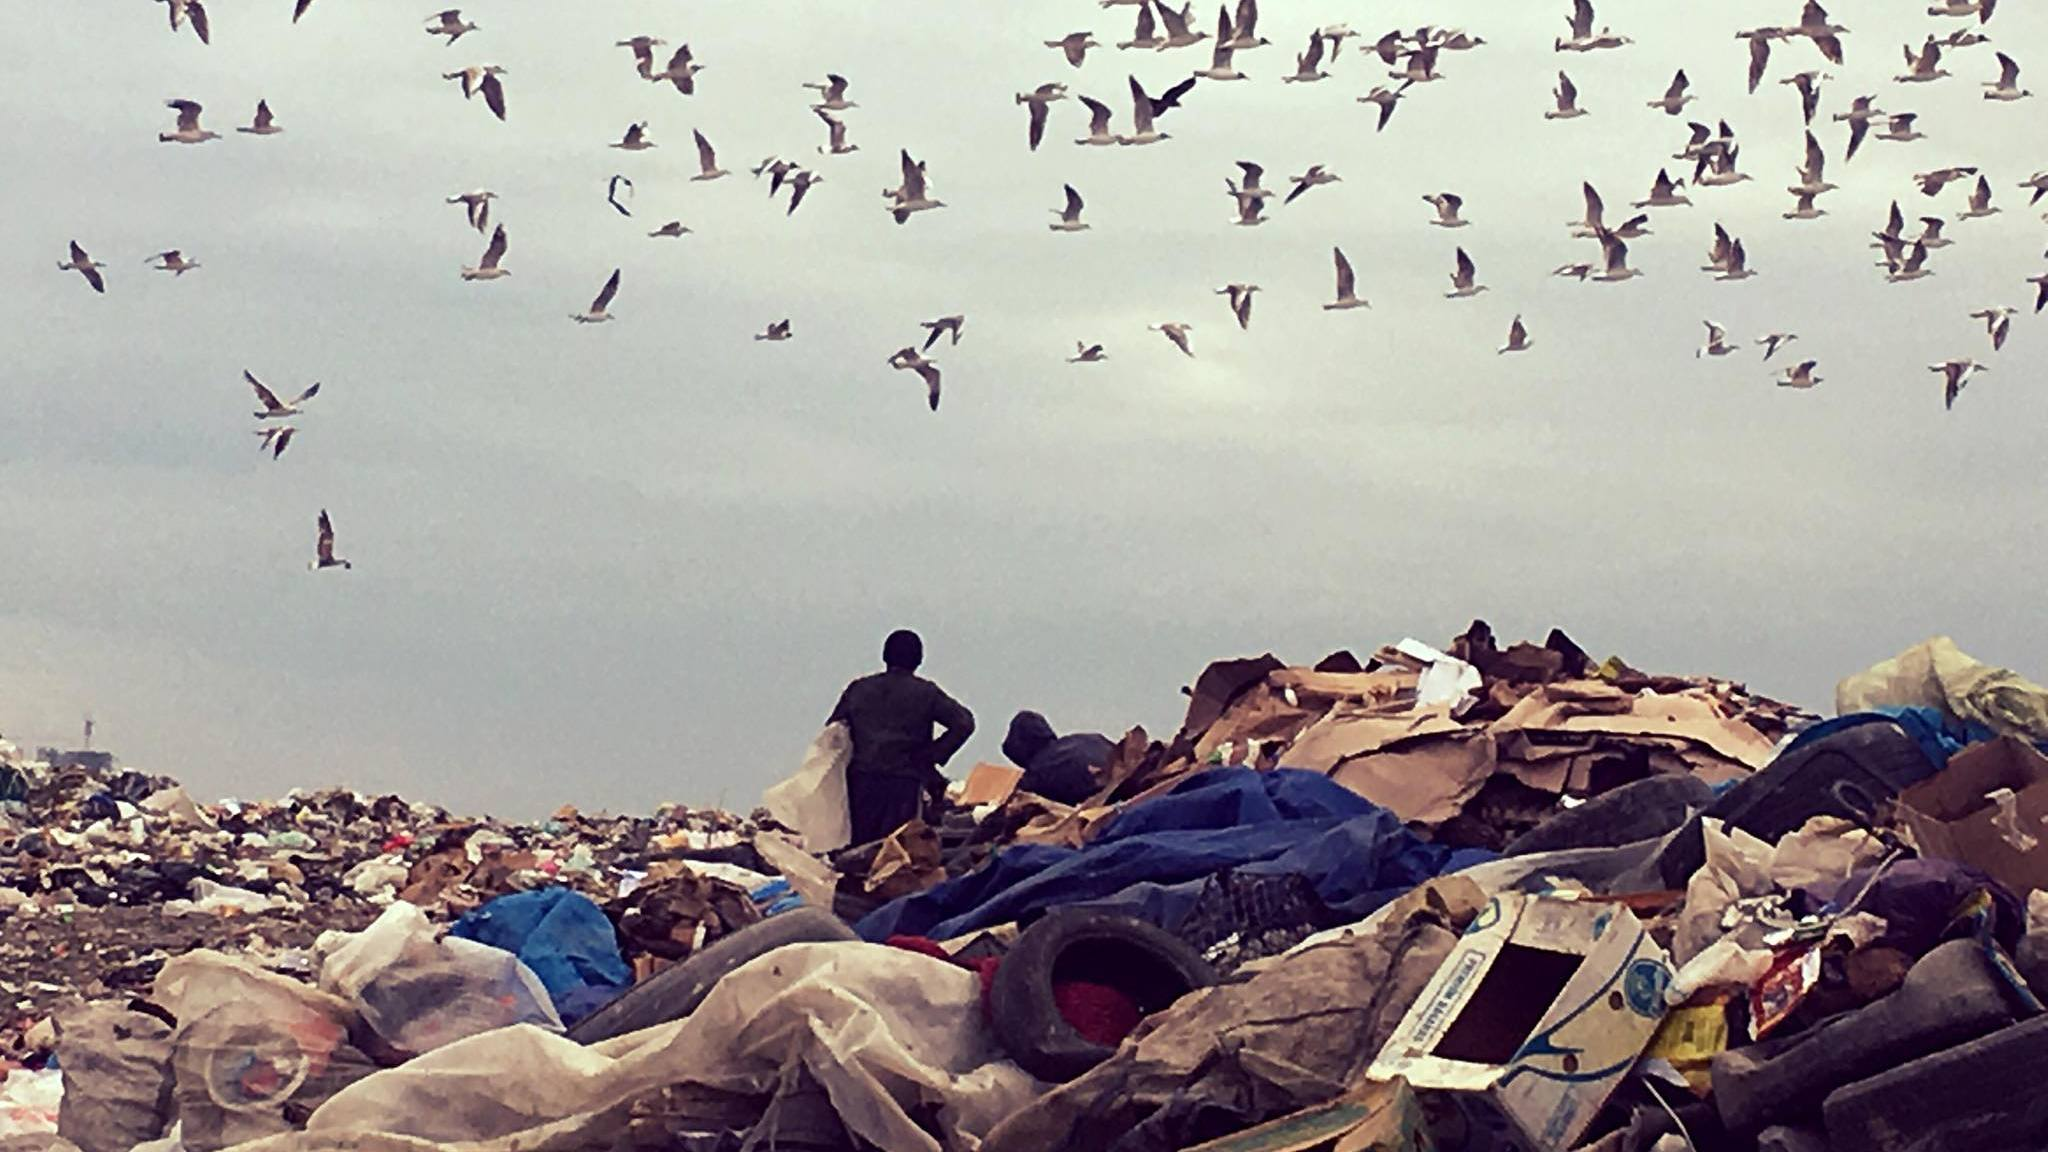 Life in the landfill- photocovering